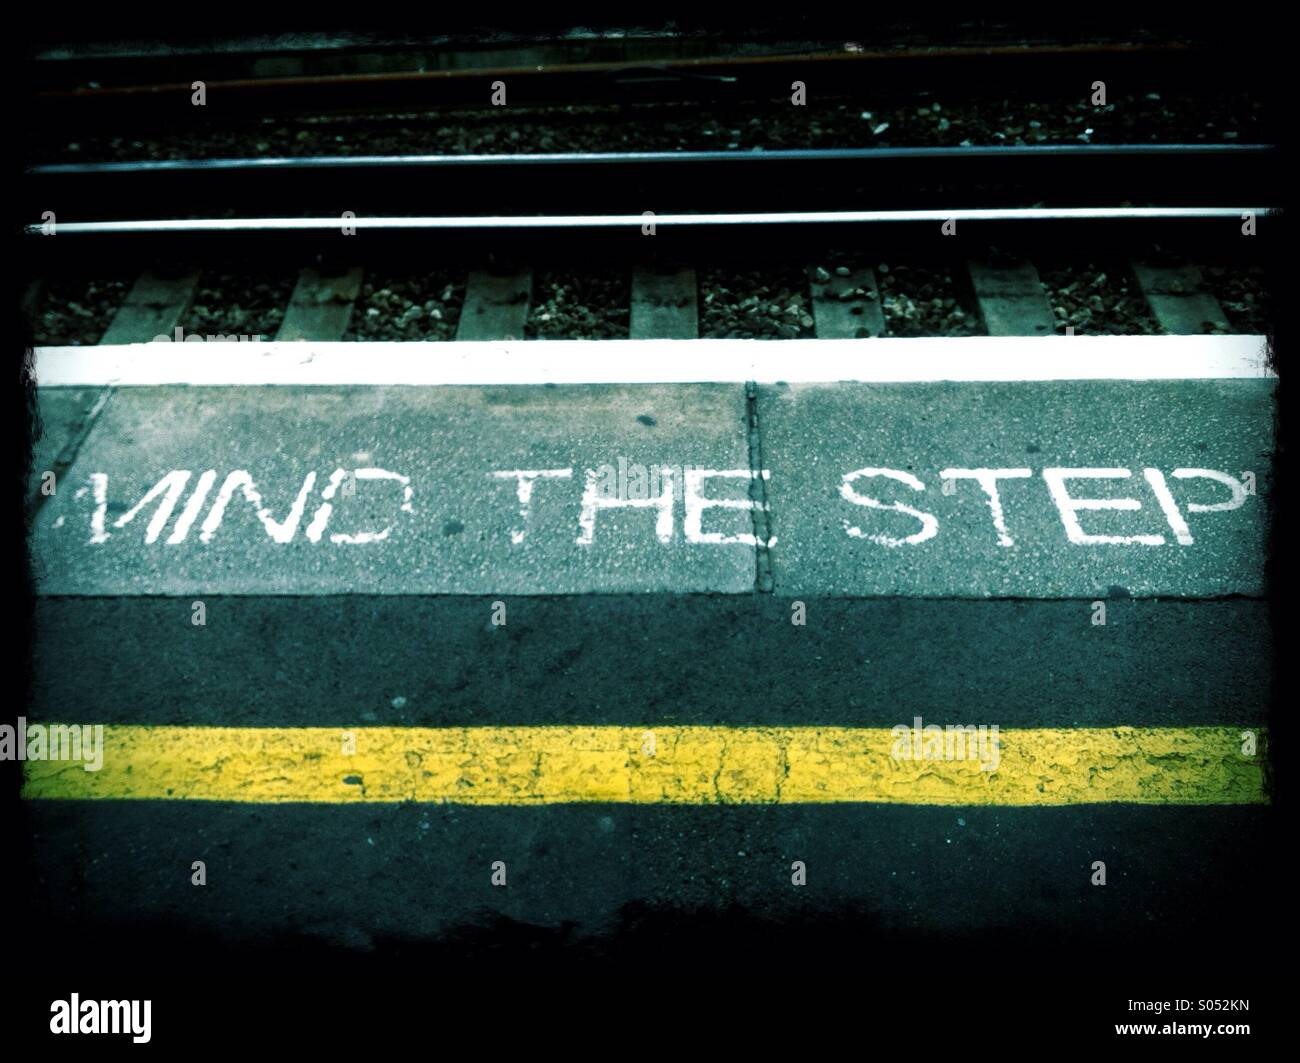 Mind The Step sign on the edge of a platform at a London train station - Stock Image